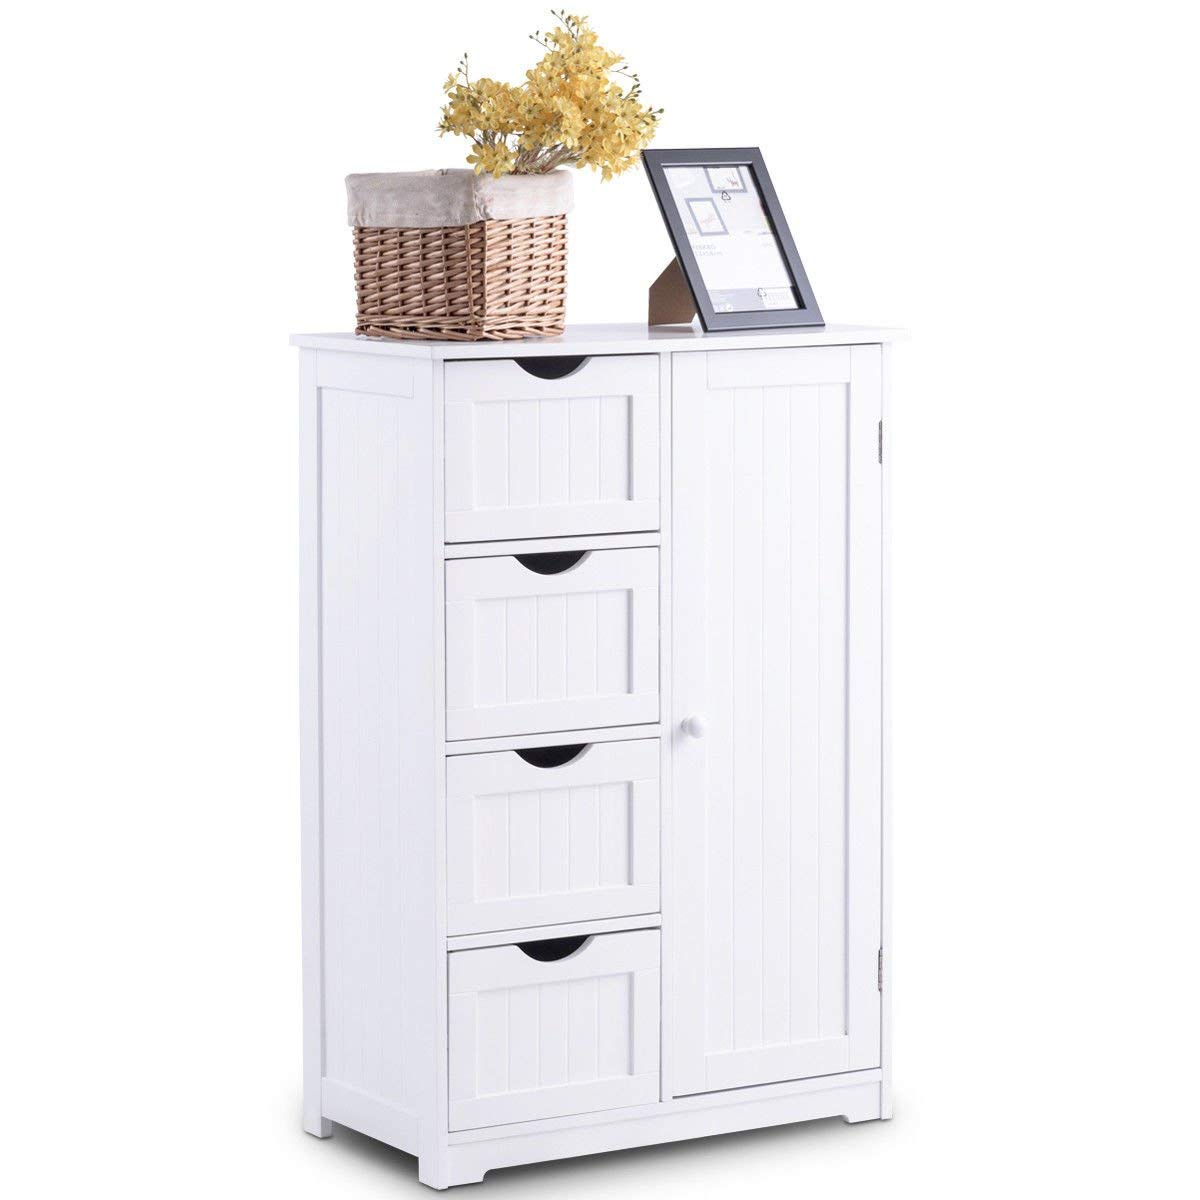 Get Quotations Wooden Bathroom Floor Cabinet Storage Cupboard 2 Shelves Free Standing 4 Drawer